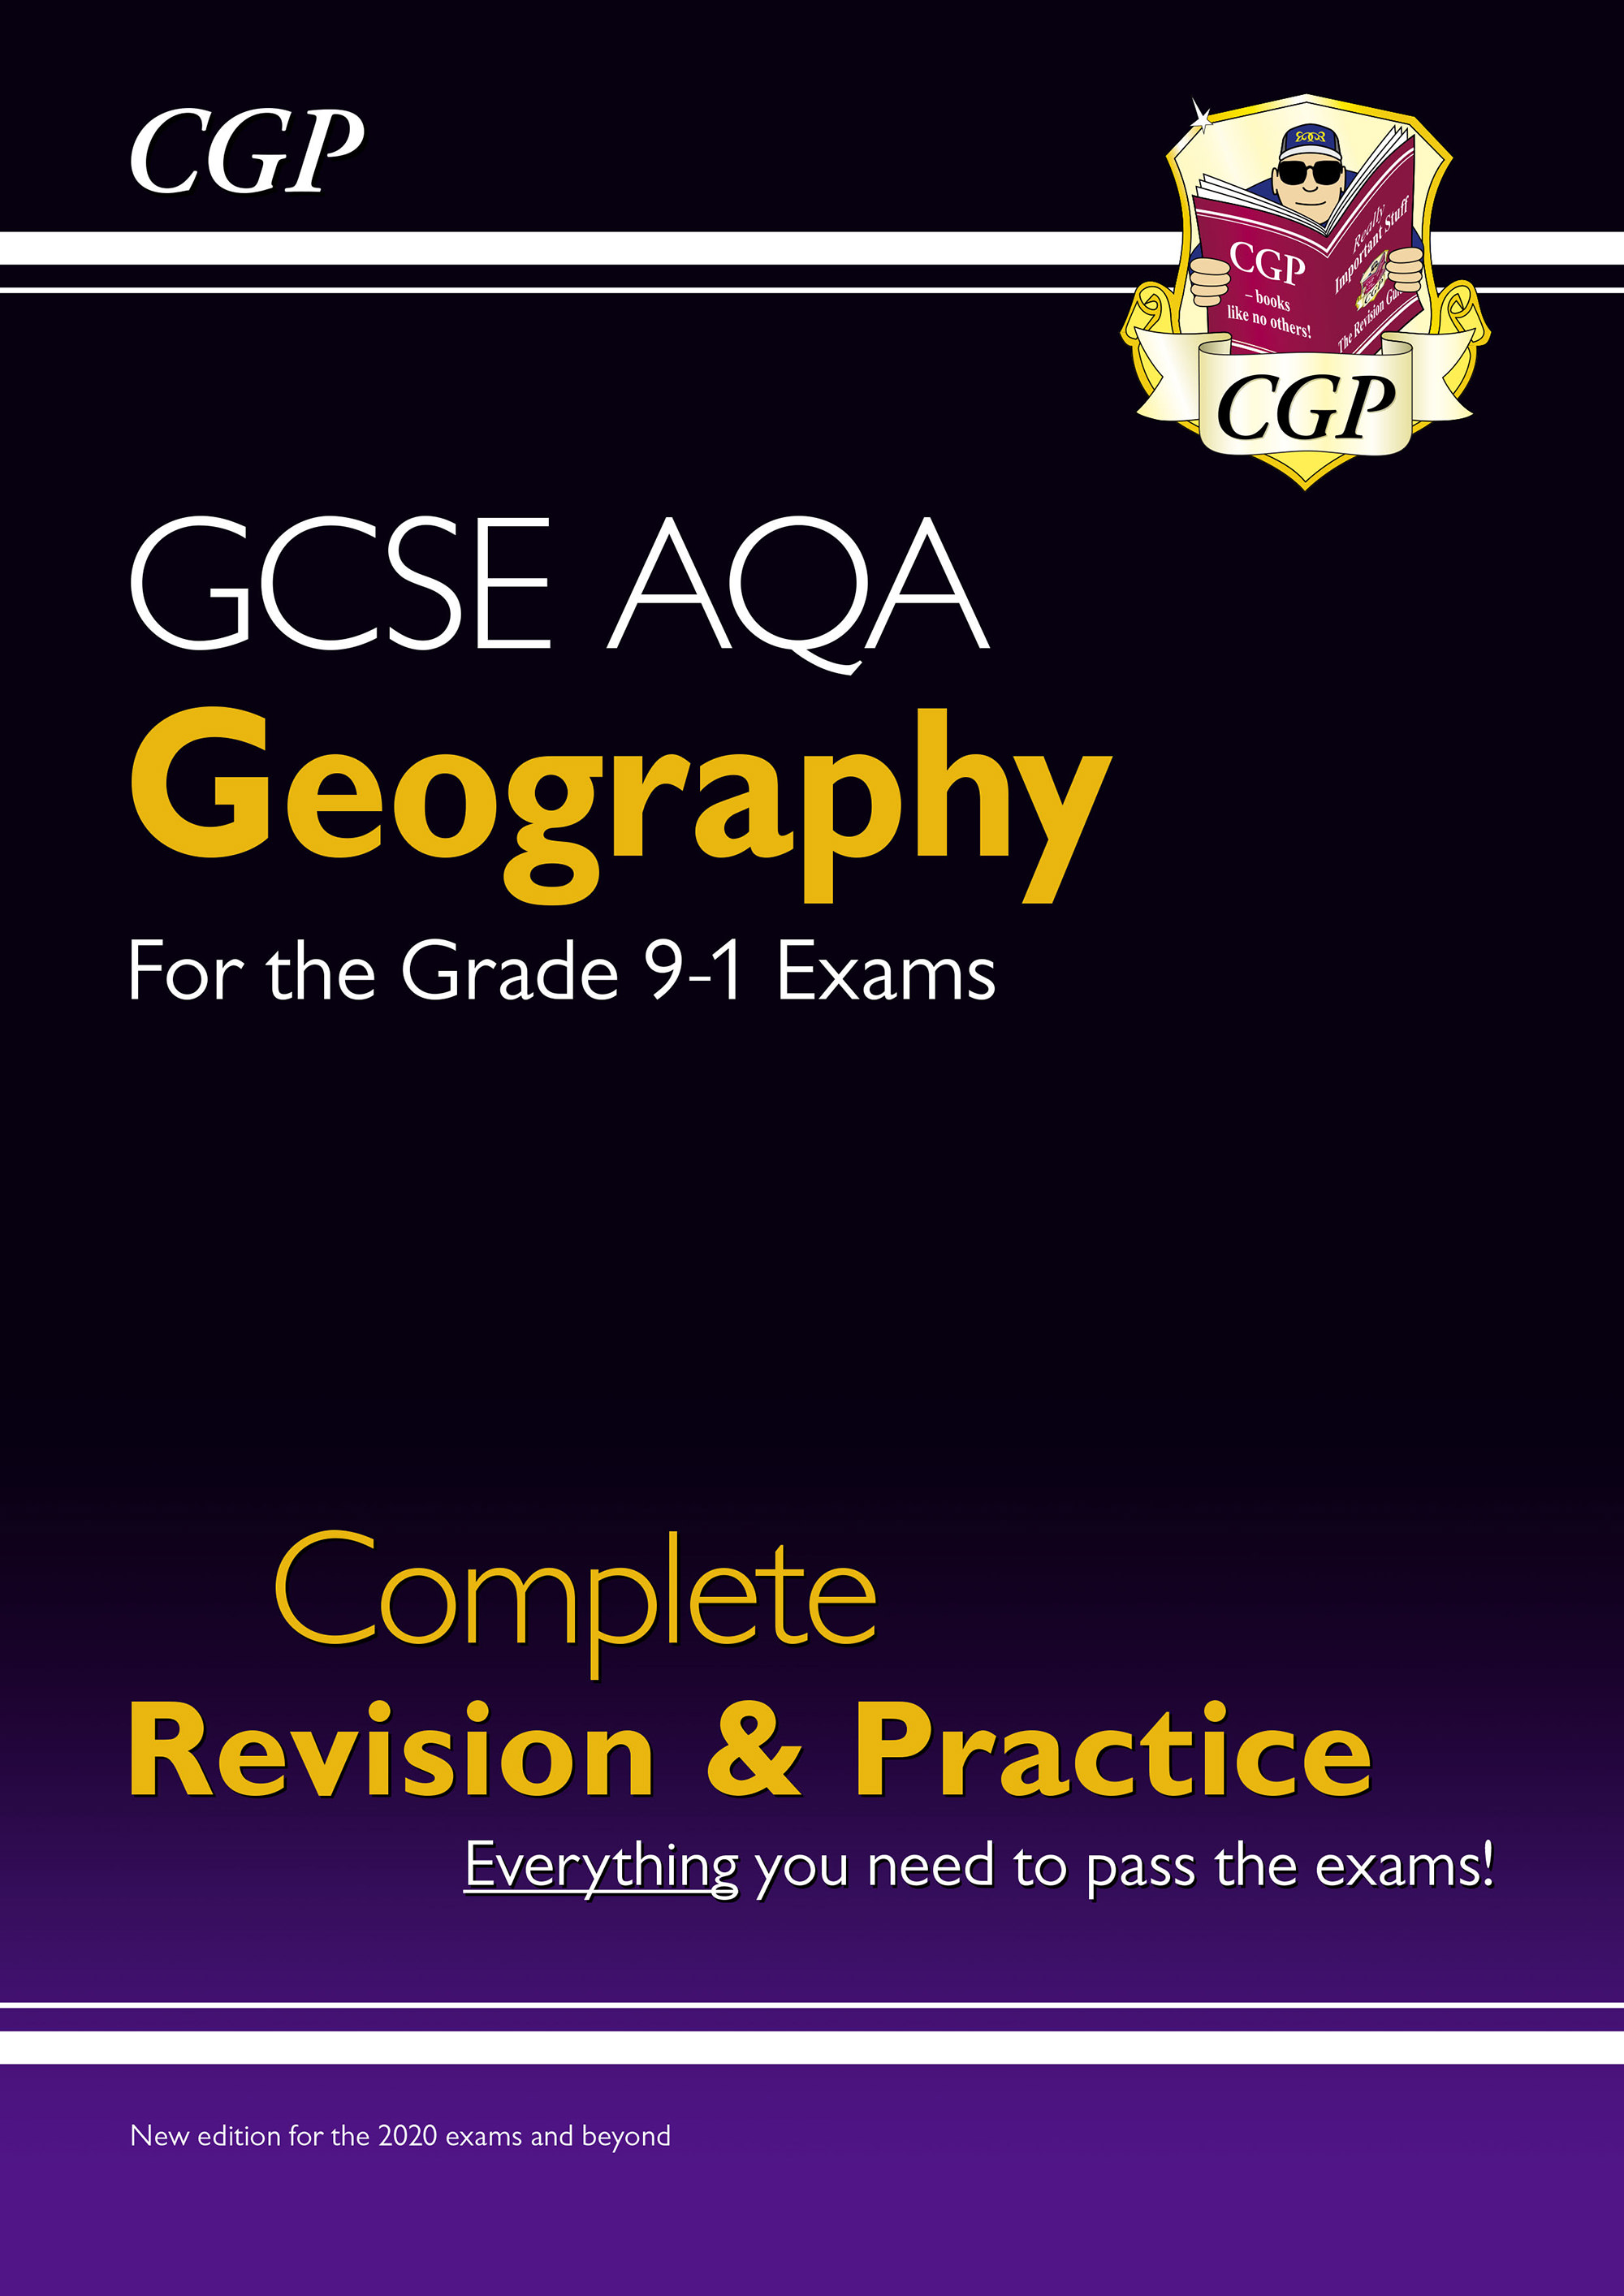 GAS42DK - New GCSE 9-1 Geography AQA Complete Revision & Practice (w/ Online Ed) - New for 2020 exam